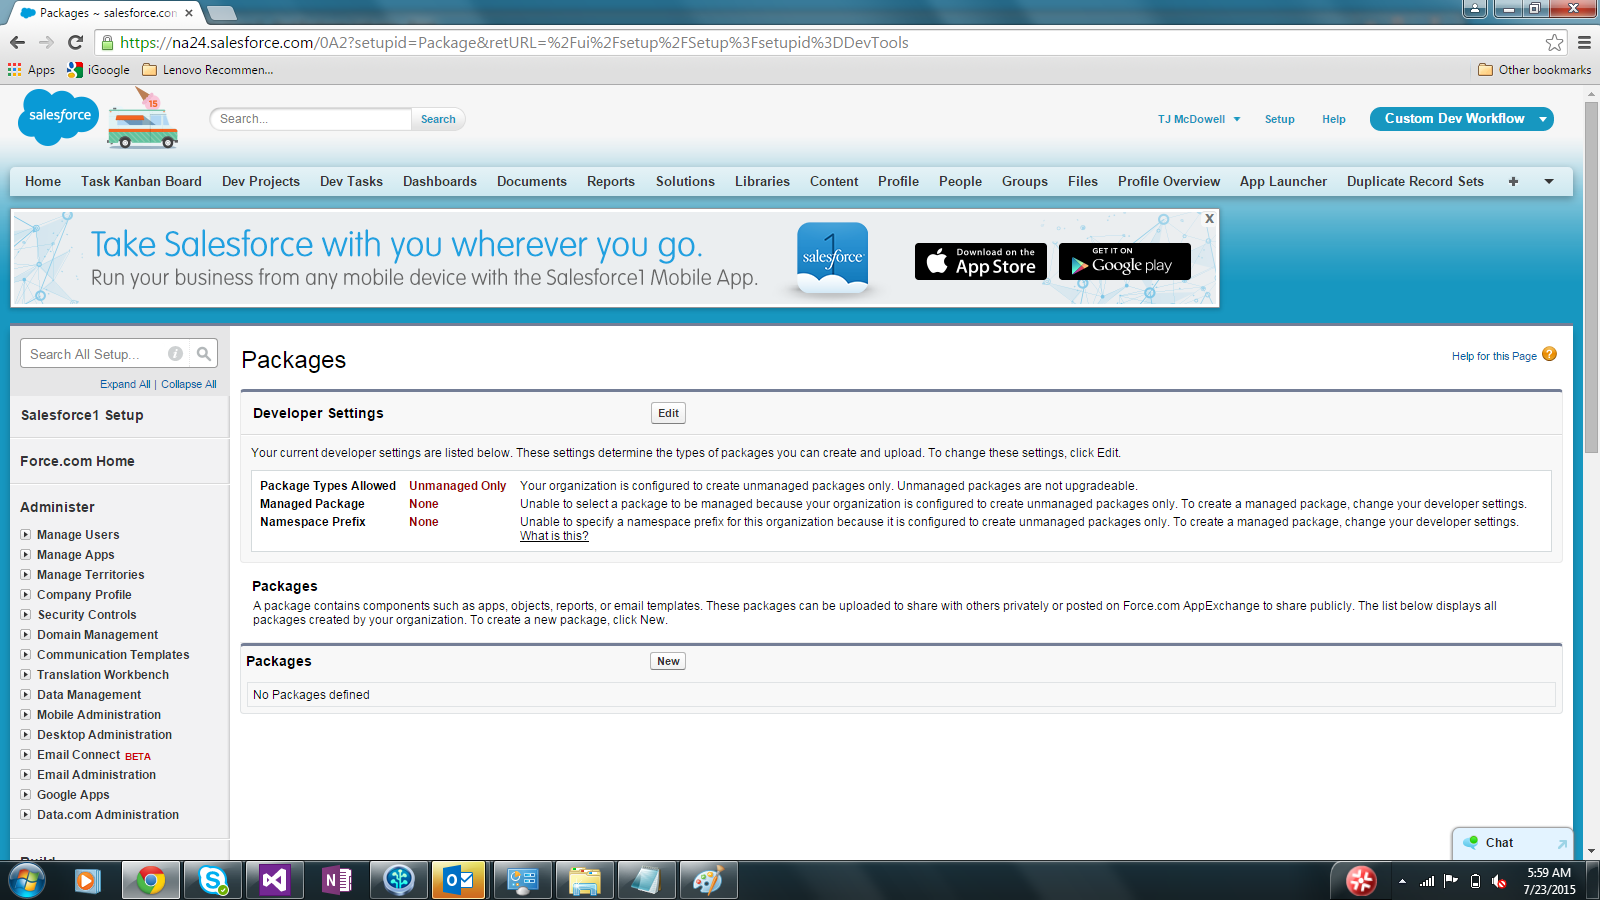 Salesforce_4_-_Packages_List[1]